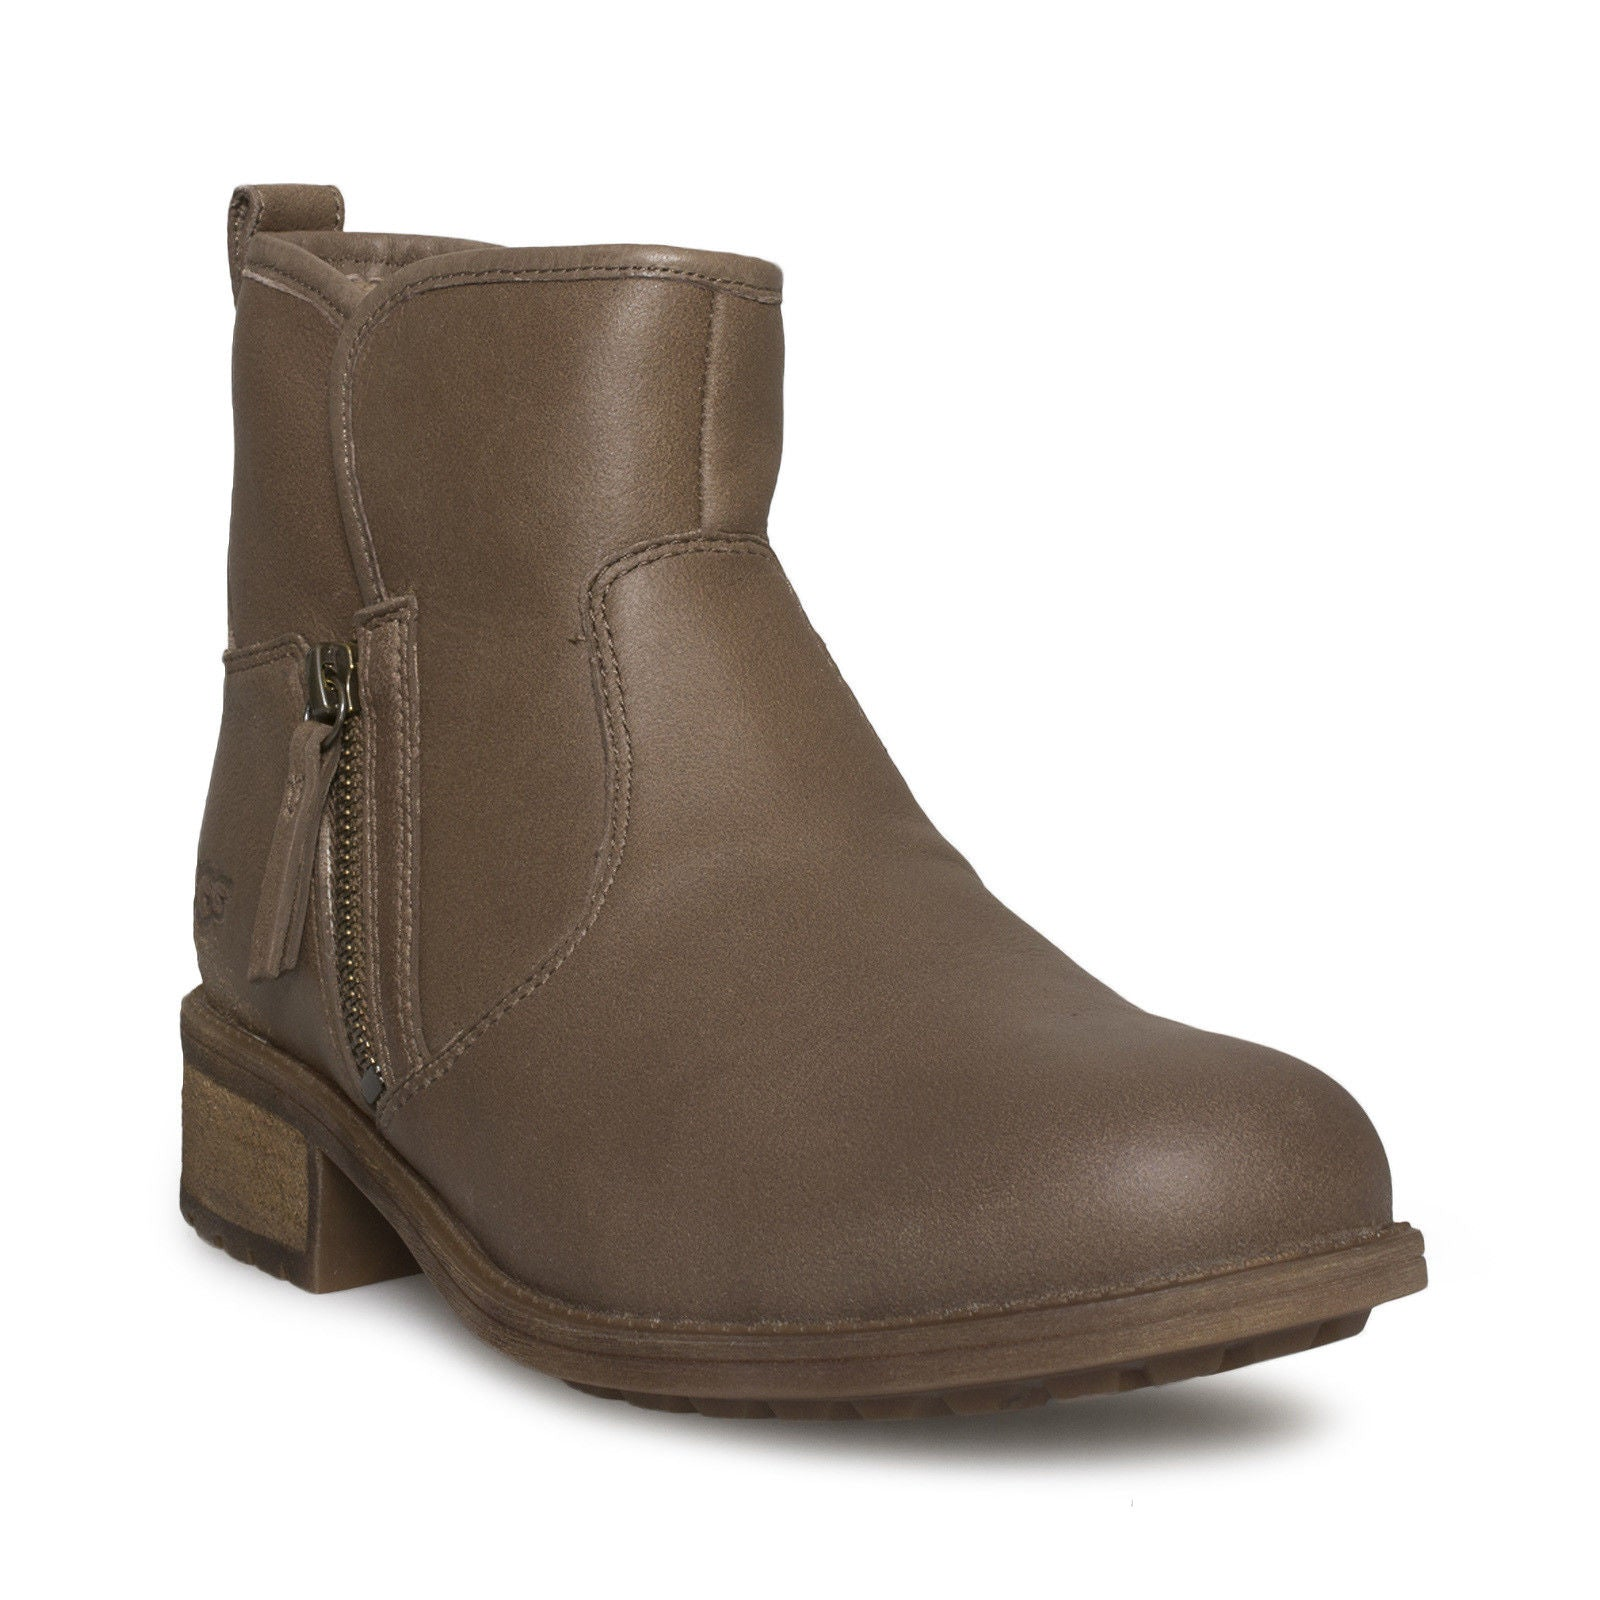 140f67b546b UGG Lavelle Camel Boots